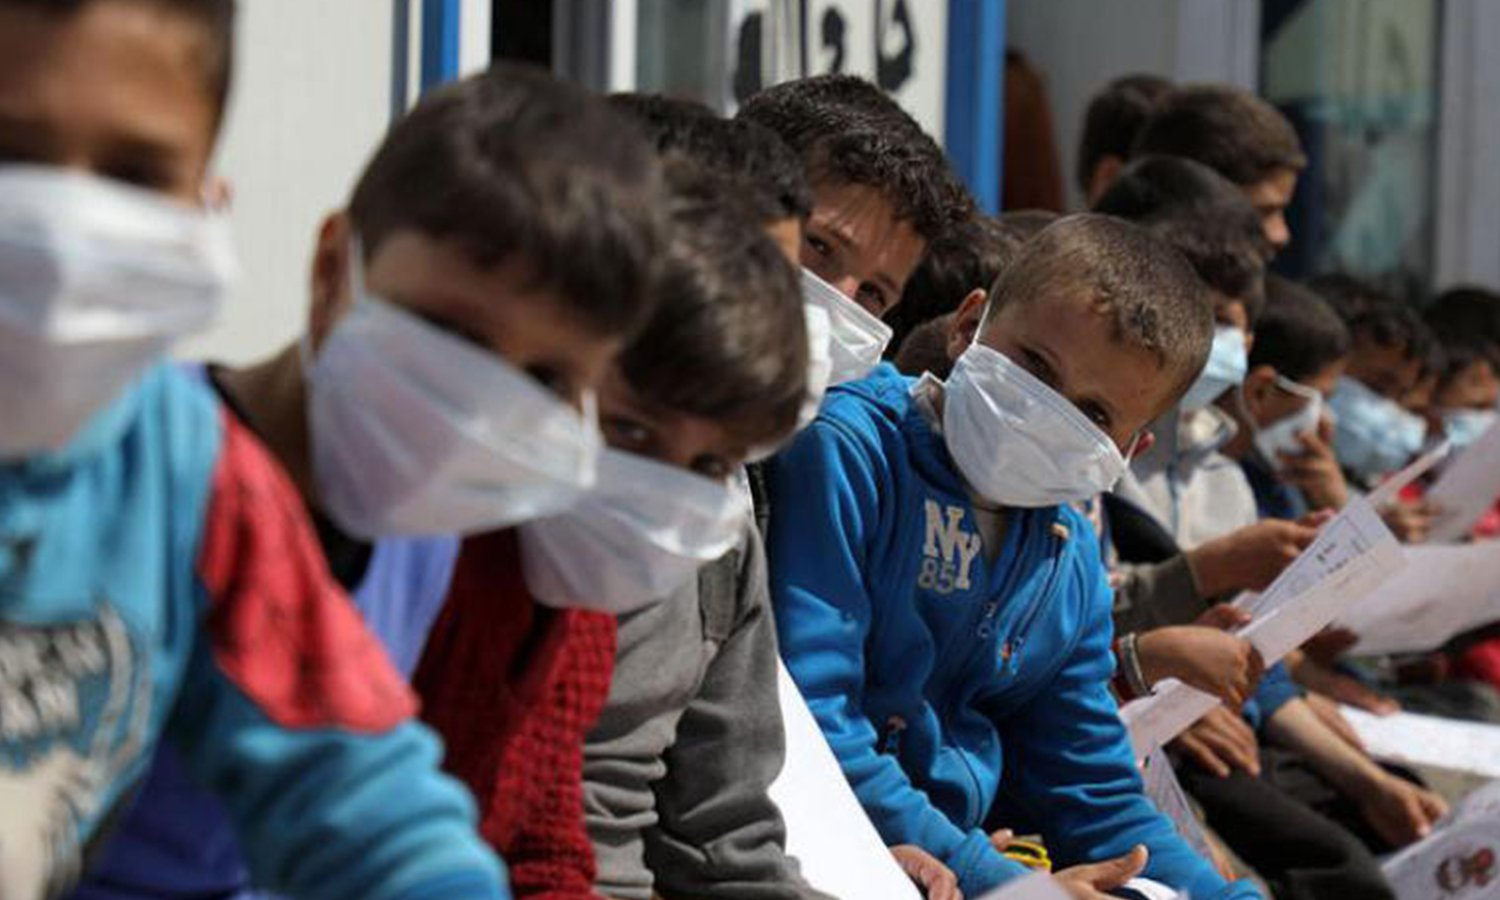 Displaced children in northern Syria being trained on COVID-19 preventative measures – 18 March 2020 (AFP)